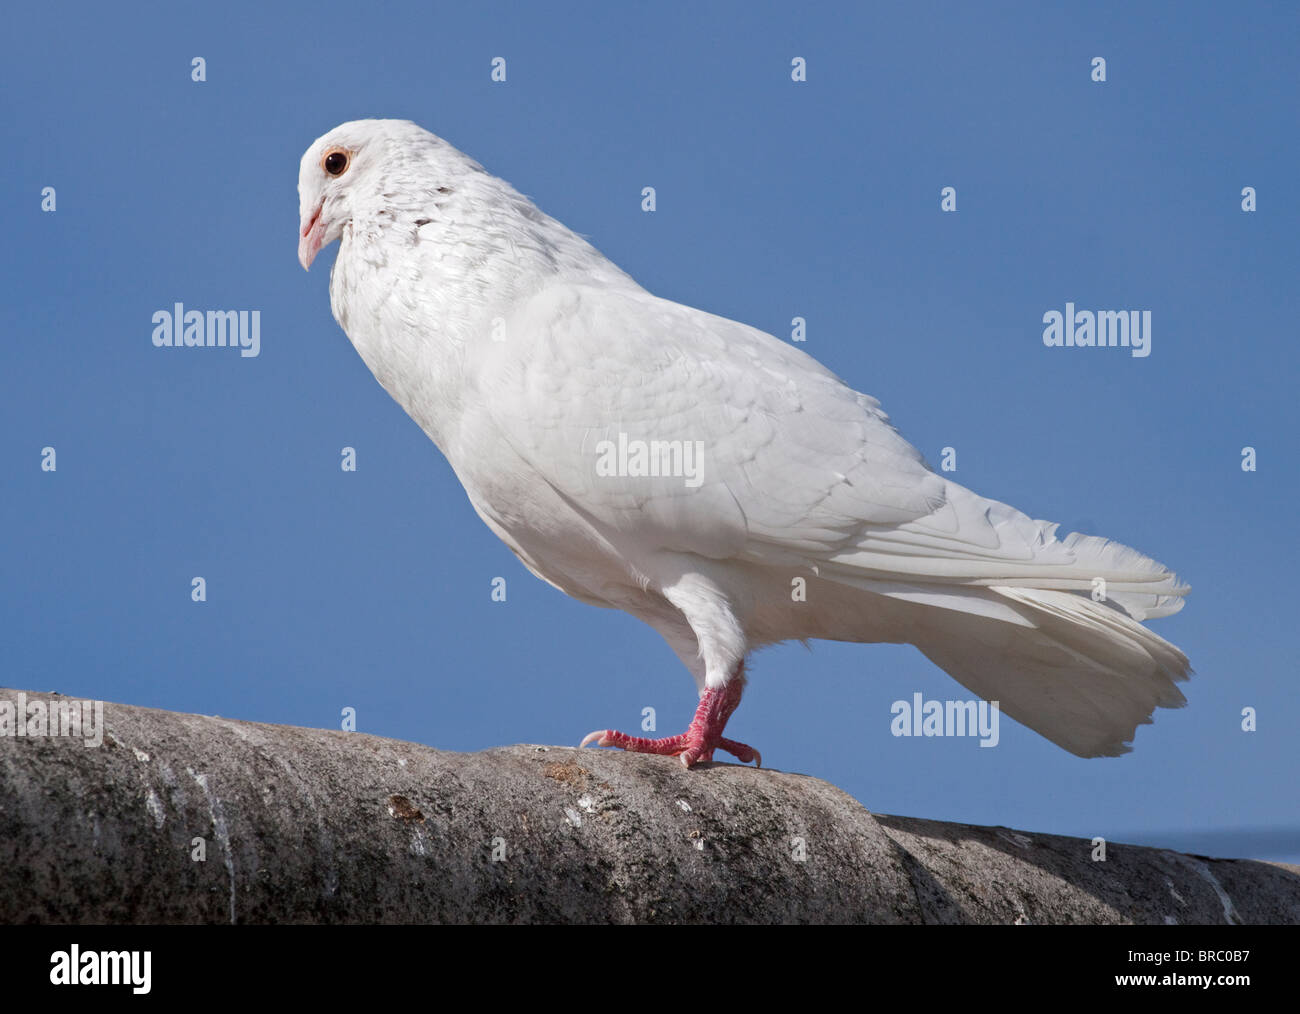 White Dove (columba) - Stock Image